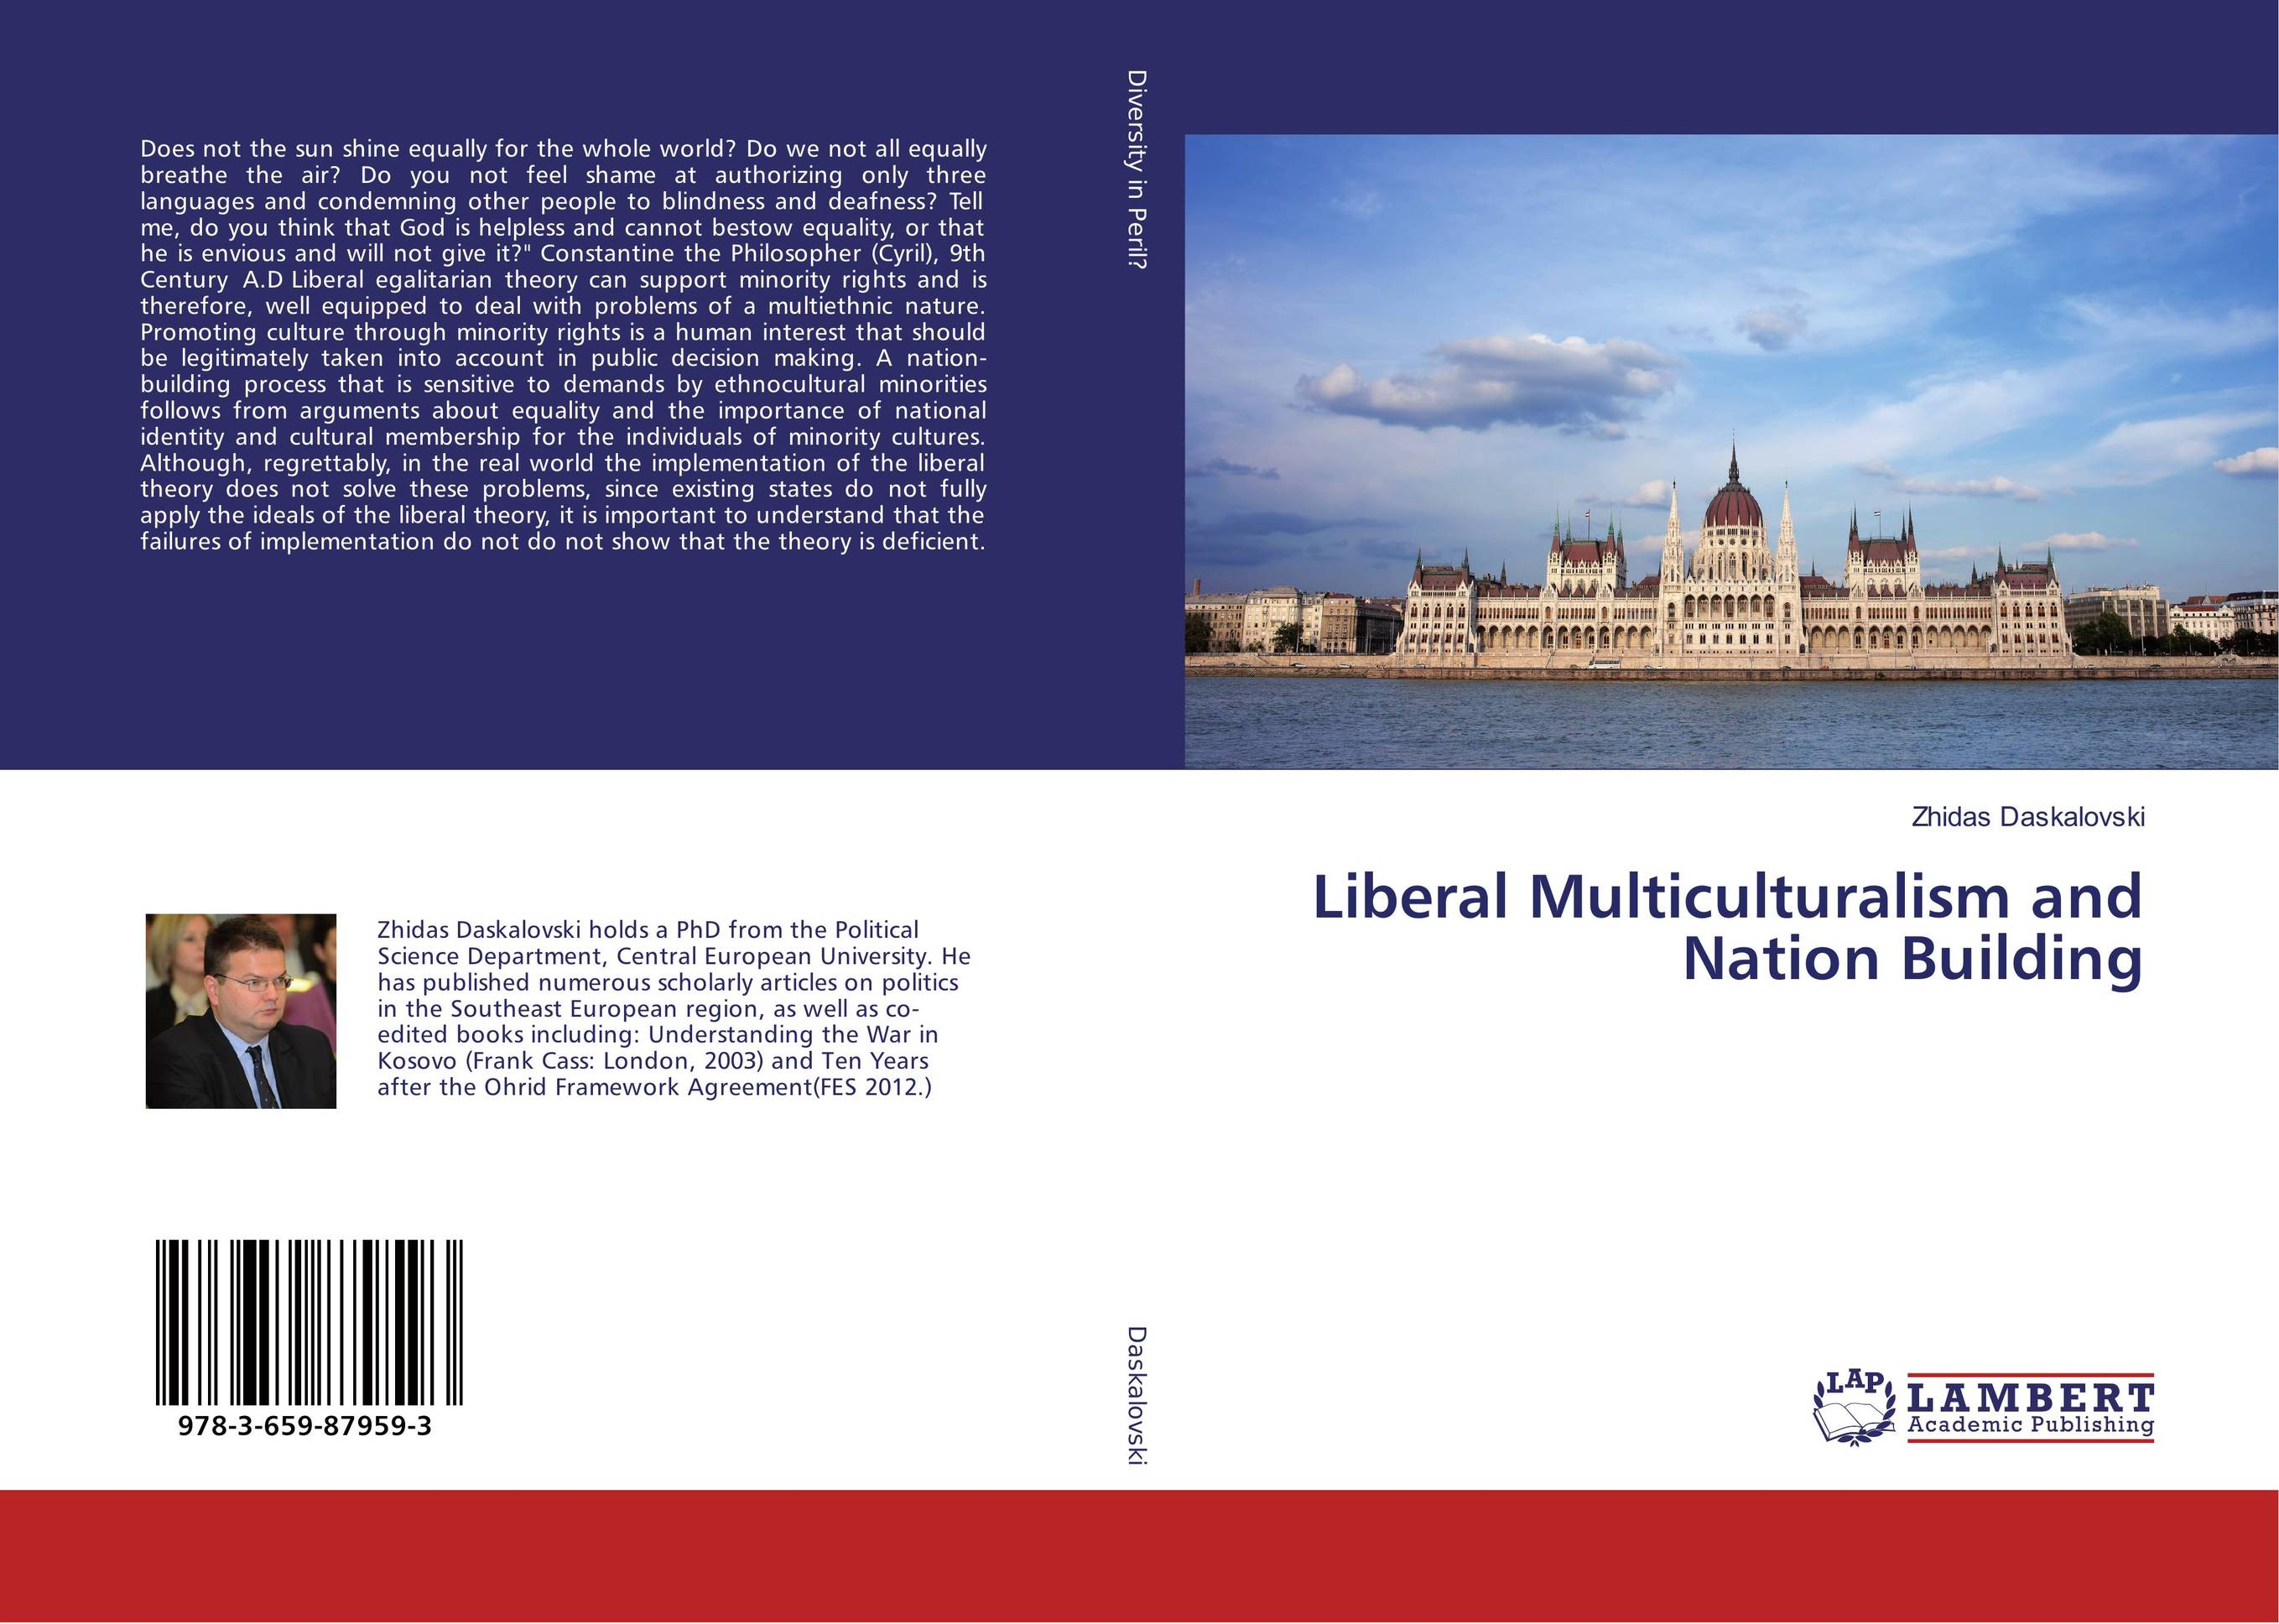 Liberal Multiculturalism and Nation Building